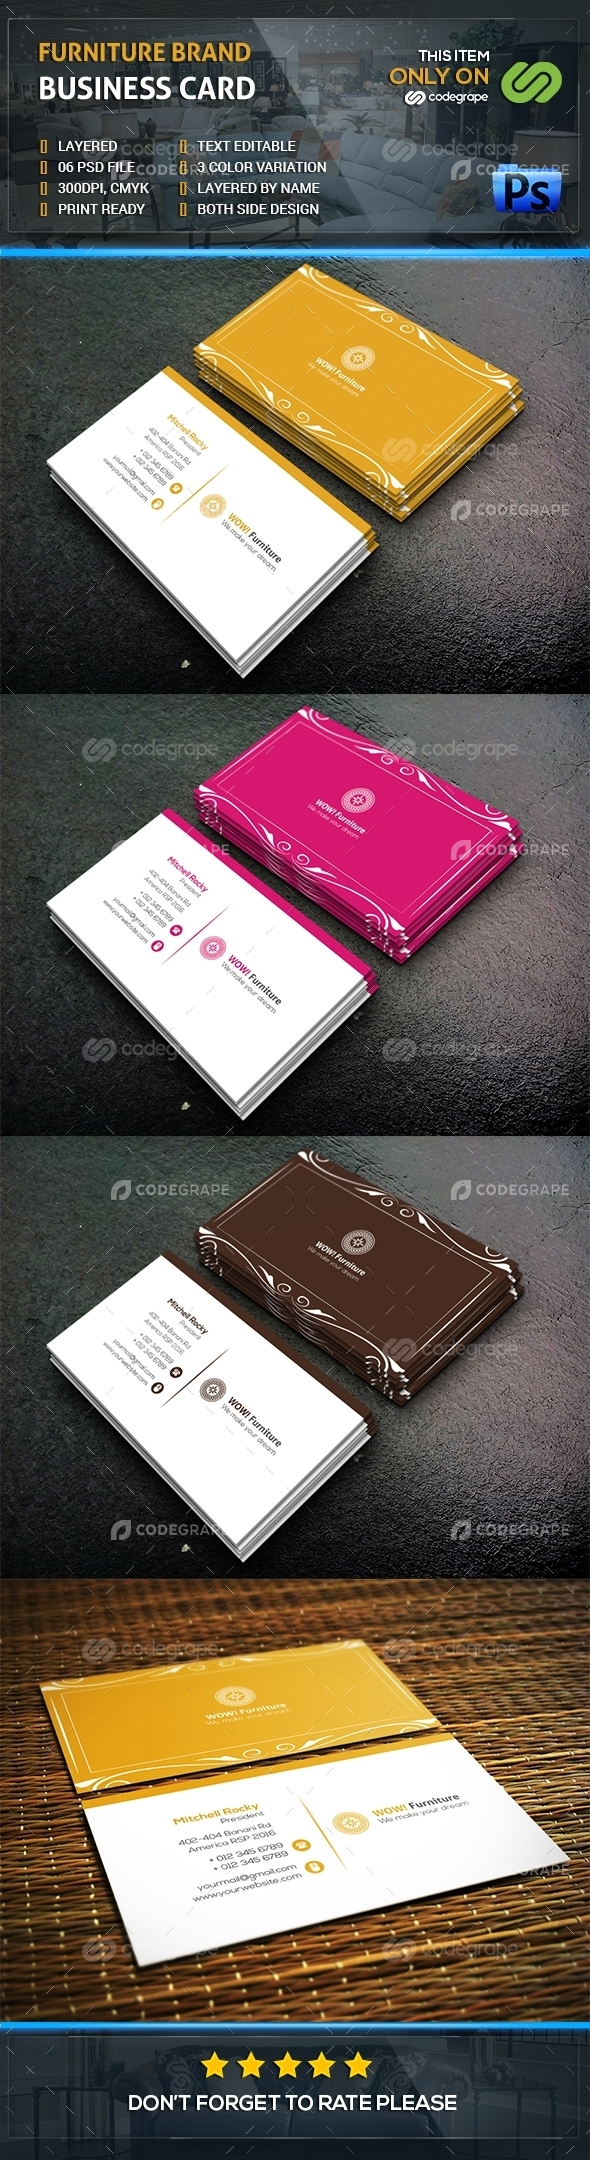 Furniture Brand Business Card